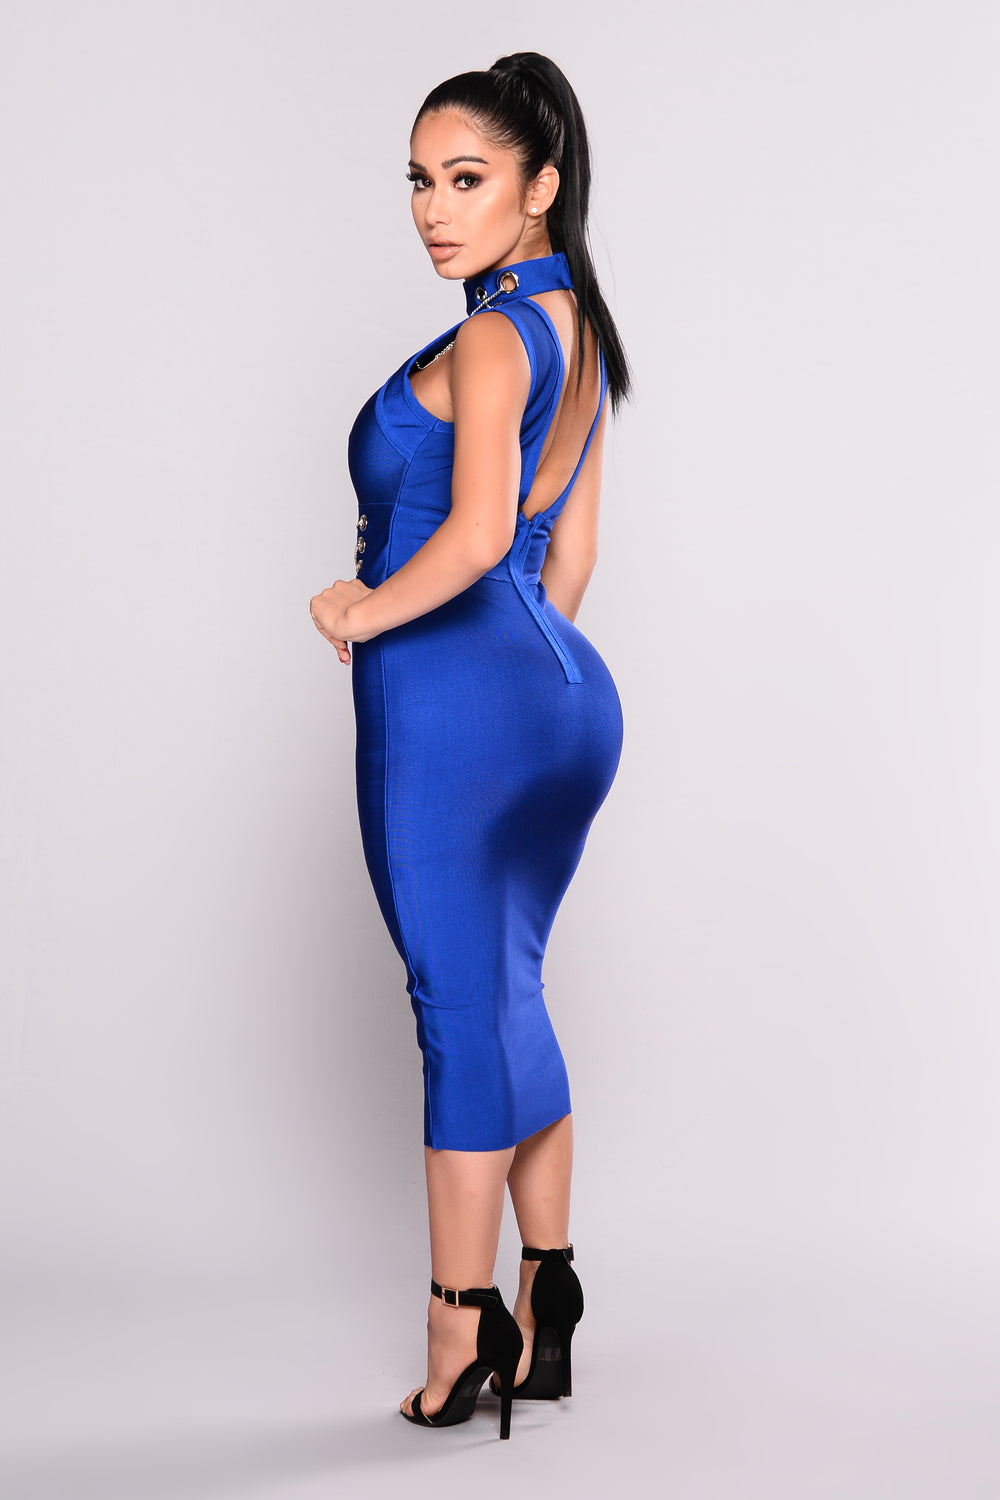 Change This Love Bandage Dress - Royal